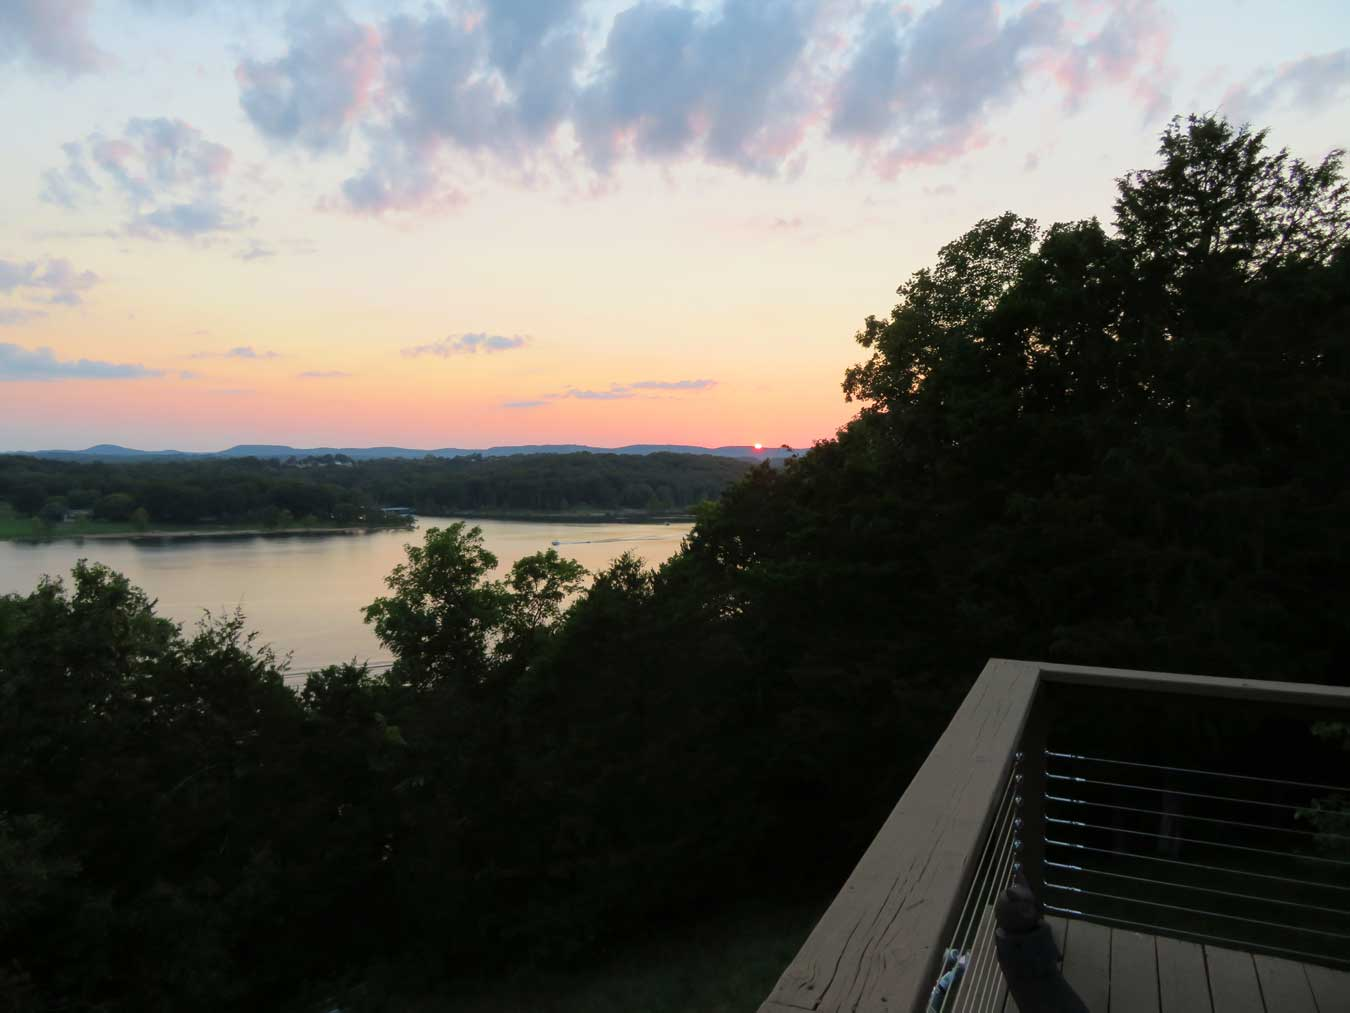 Table Rock Lakes teaches us that cool sunsets CAN happen on land